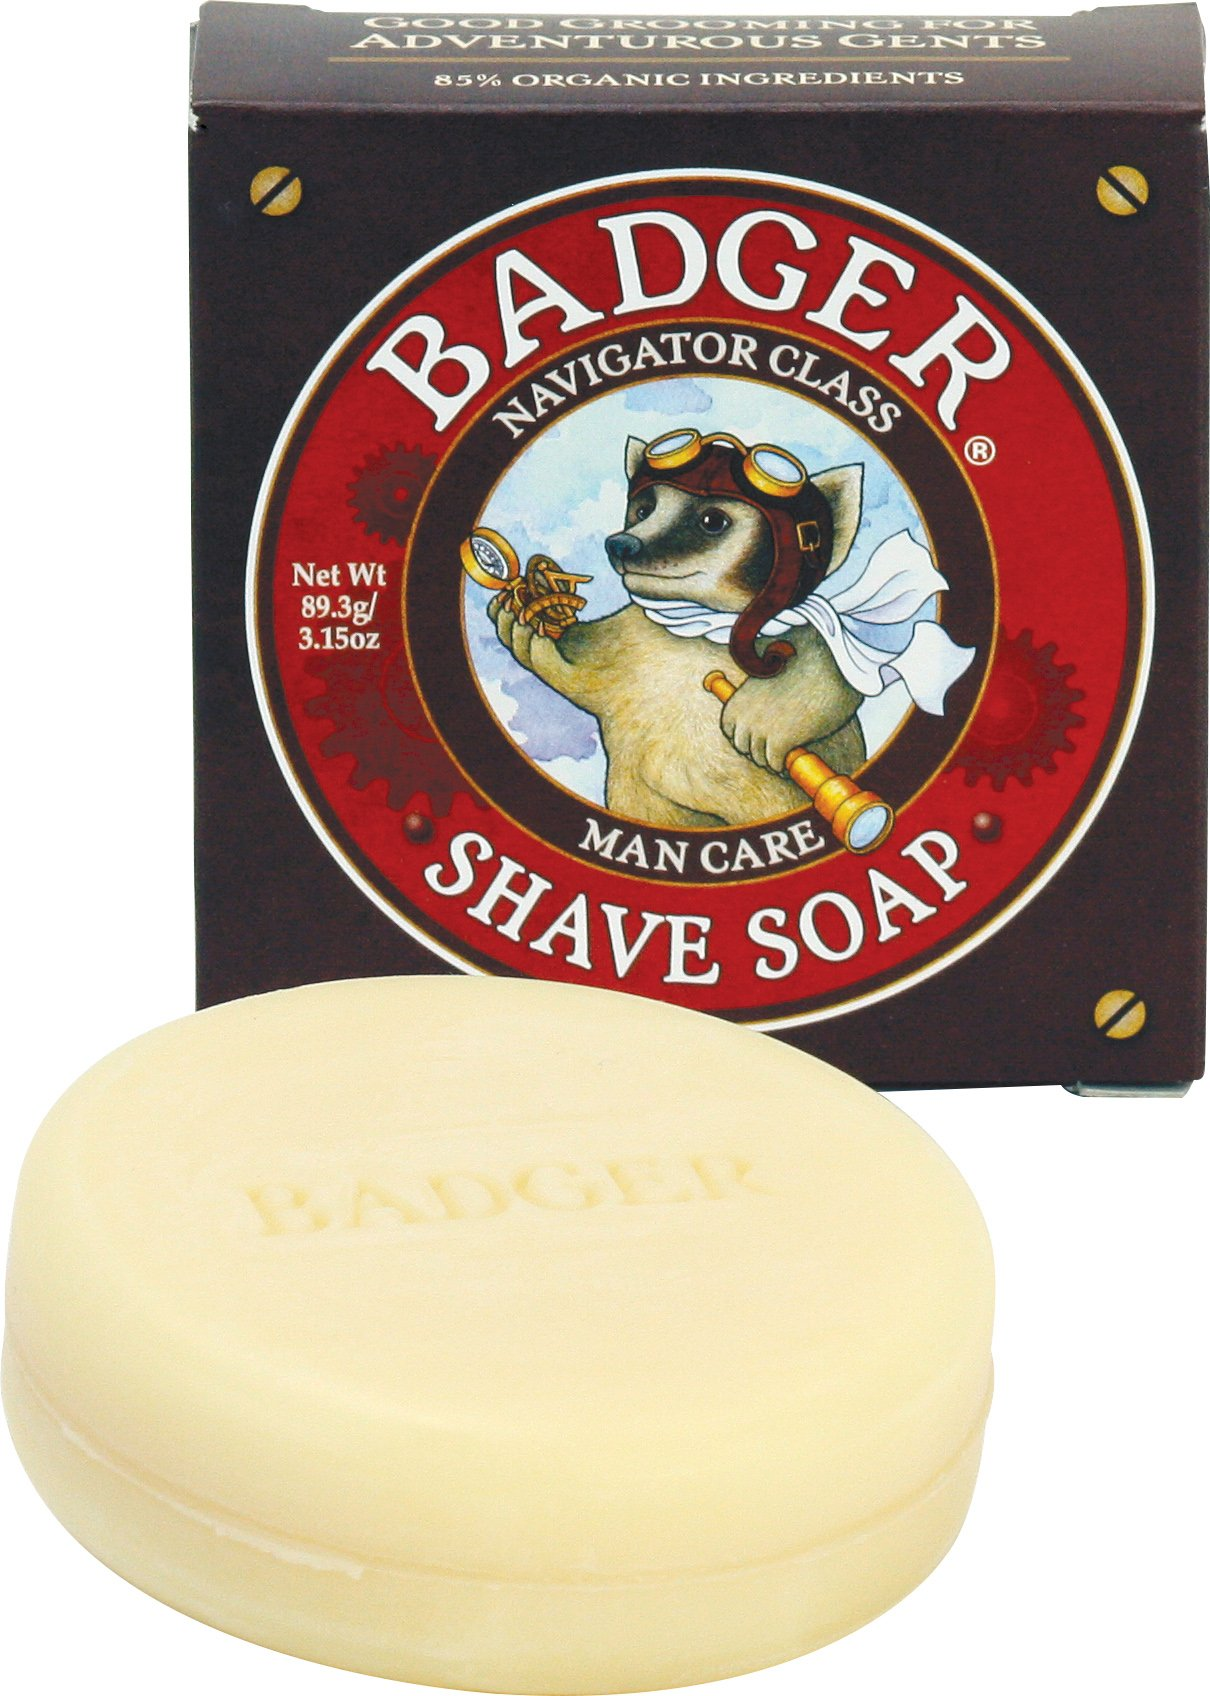 Badger Shaving Soap - 3.15 oz Bar